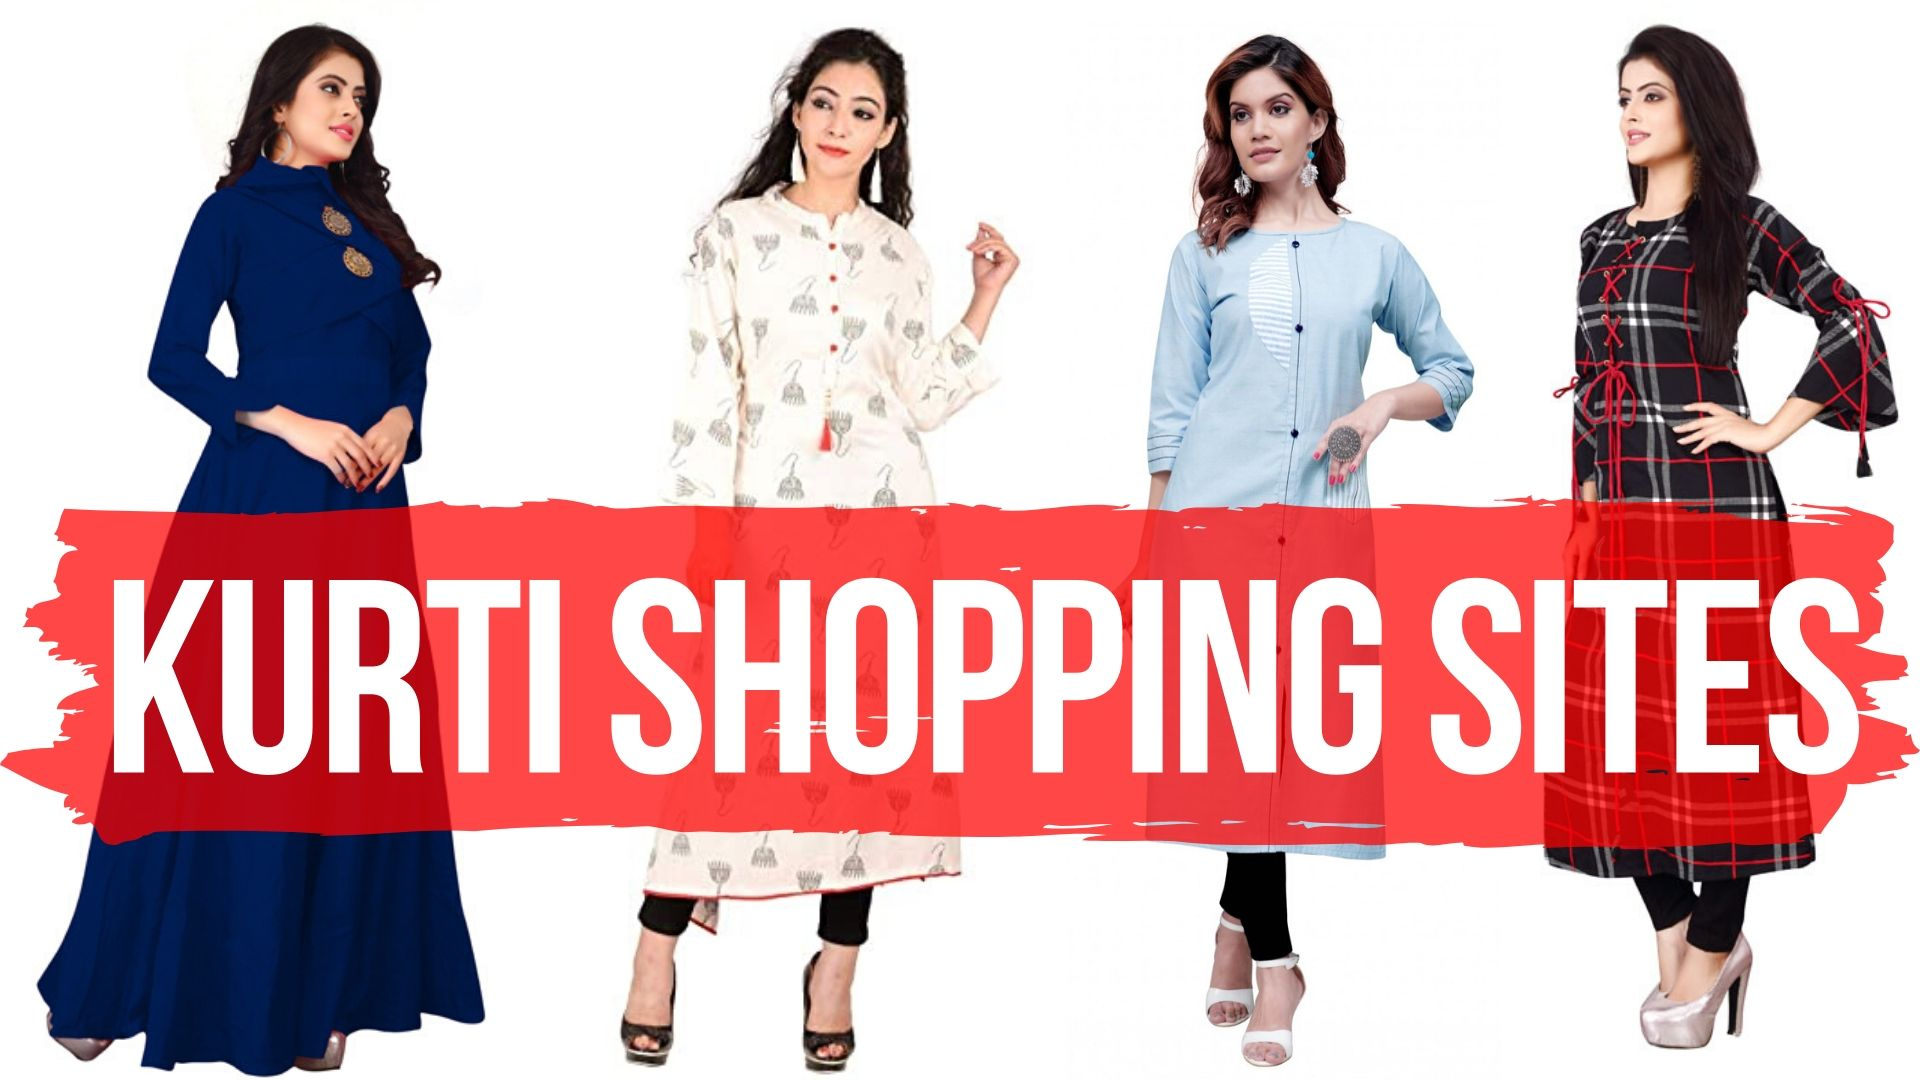 kurti shopping sites